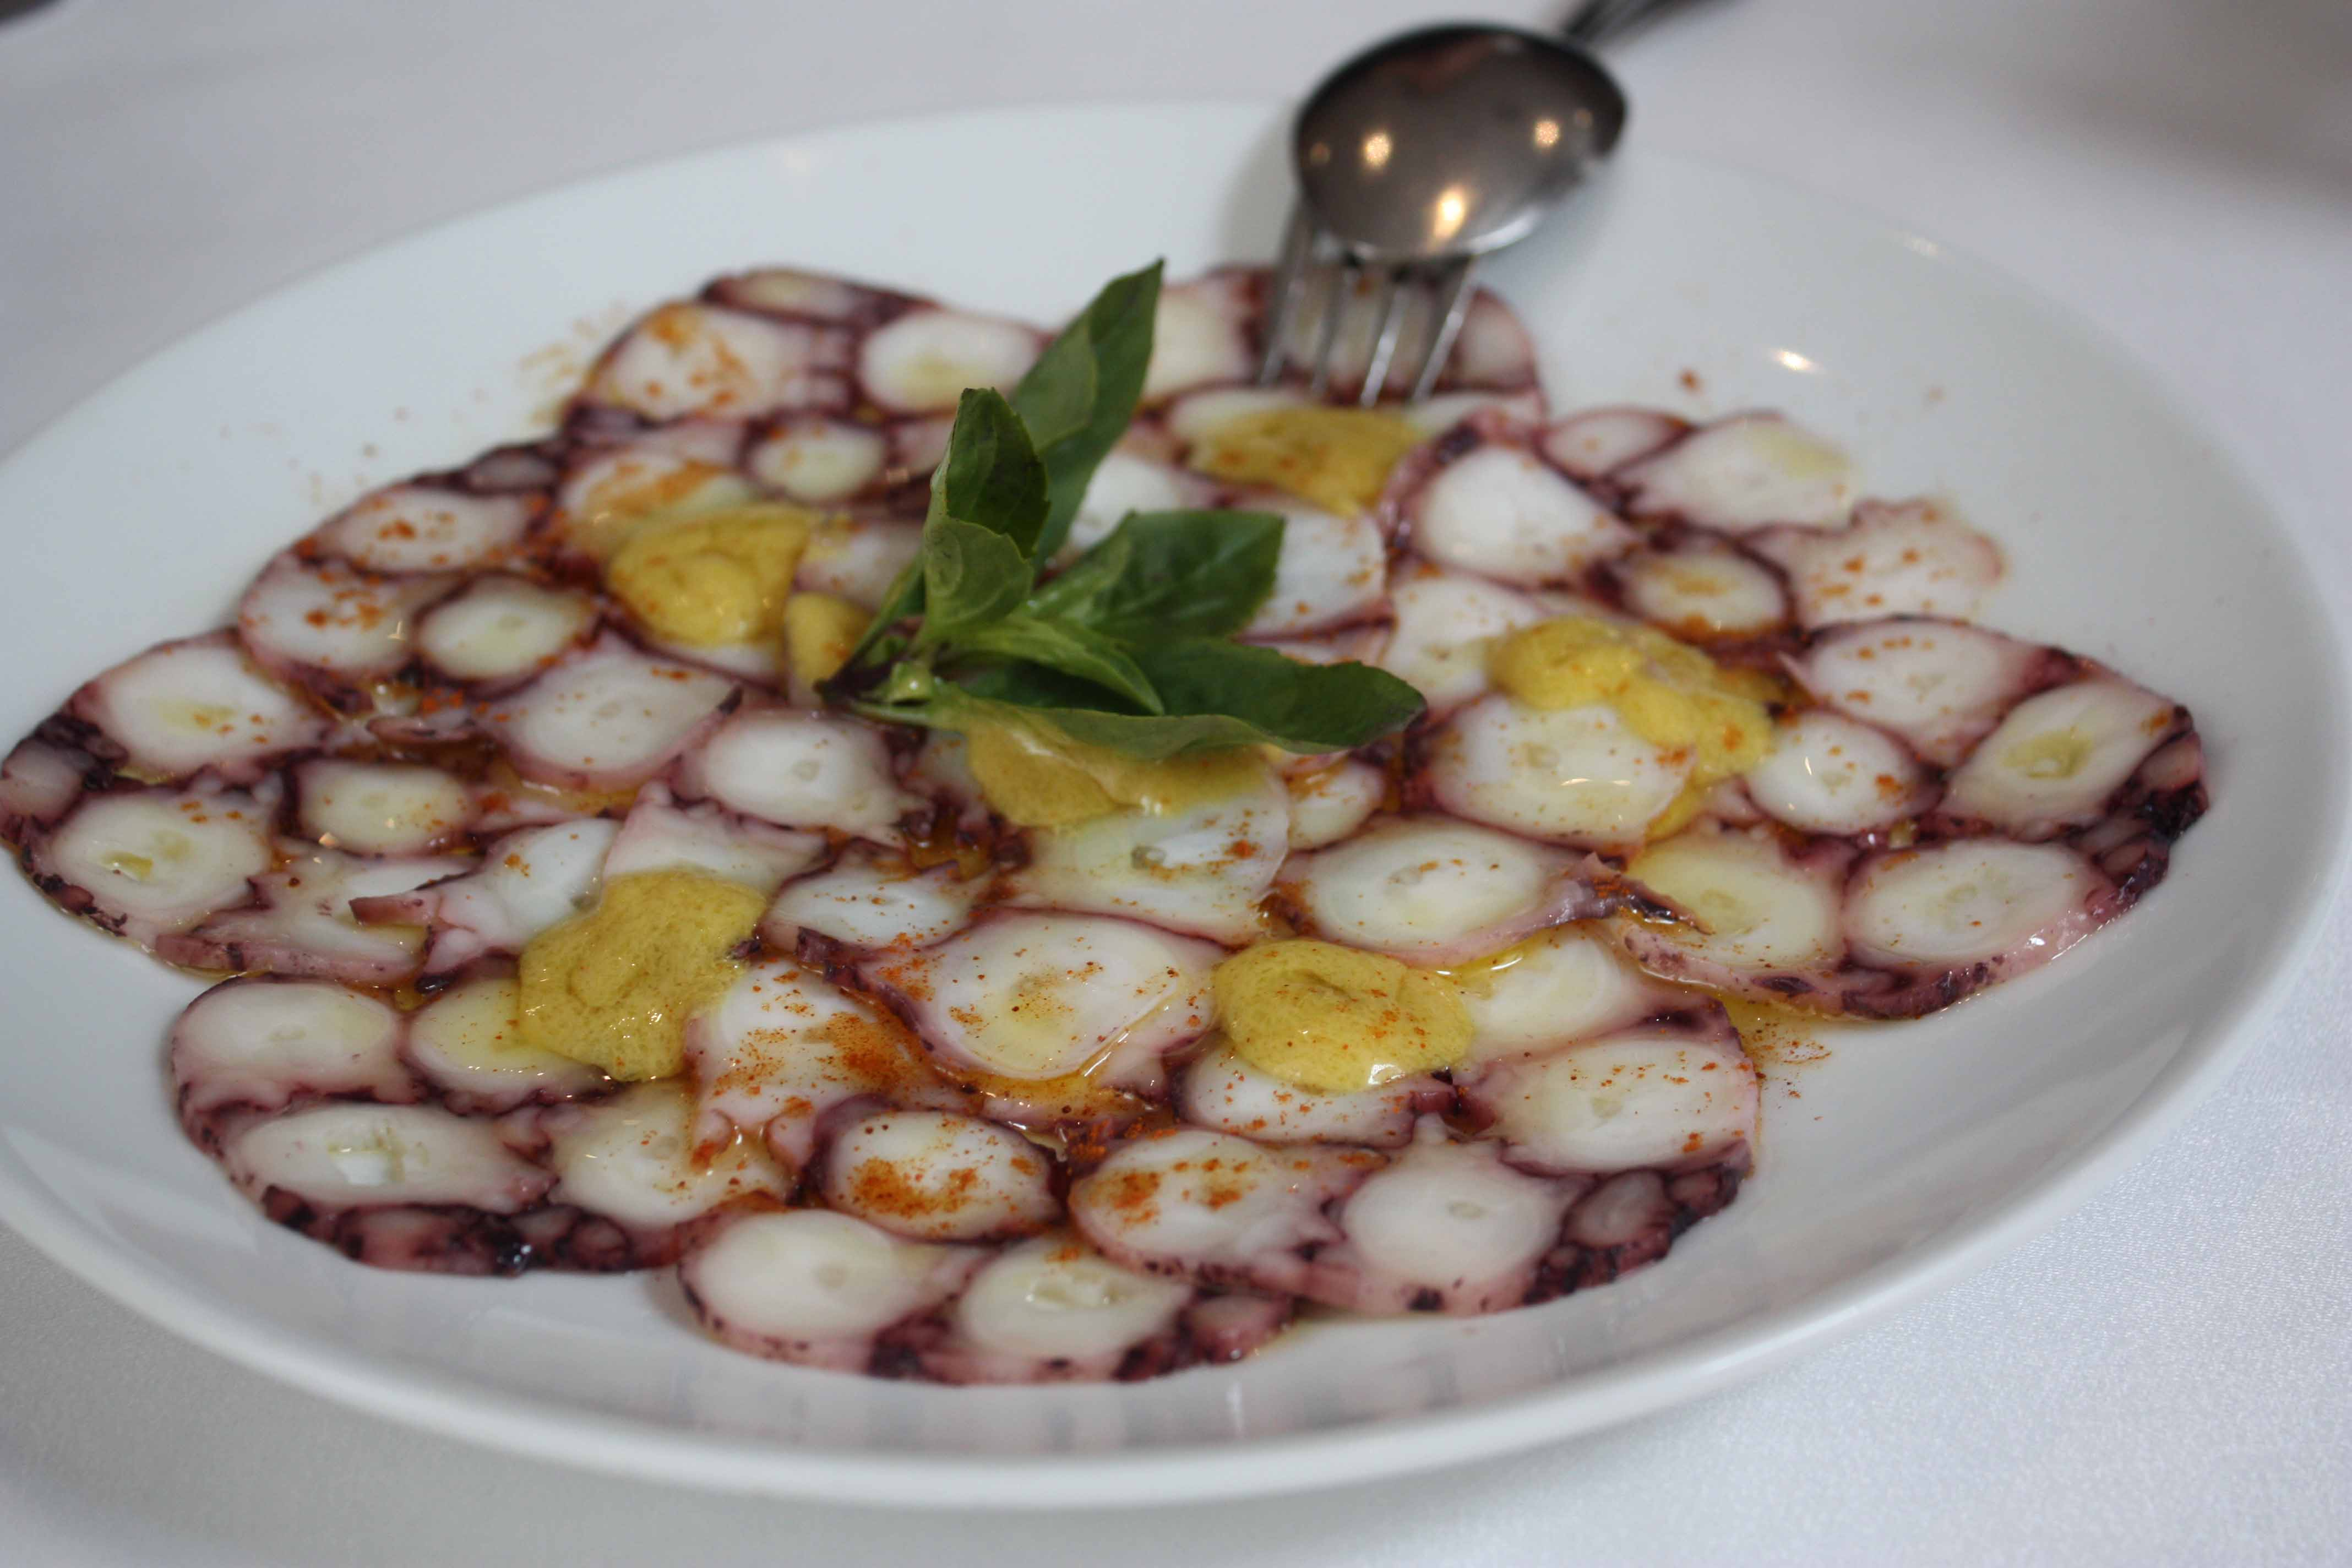 Asia macau faim oui oui for Authentic portuguese cuisine